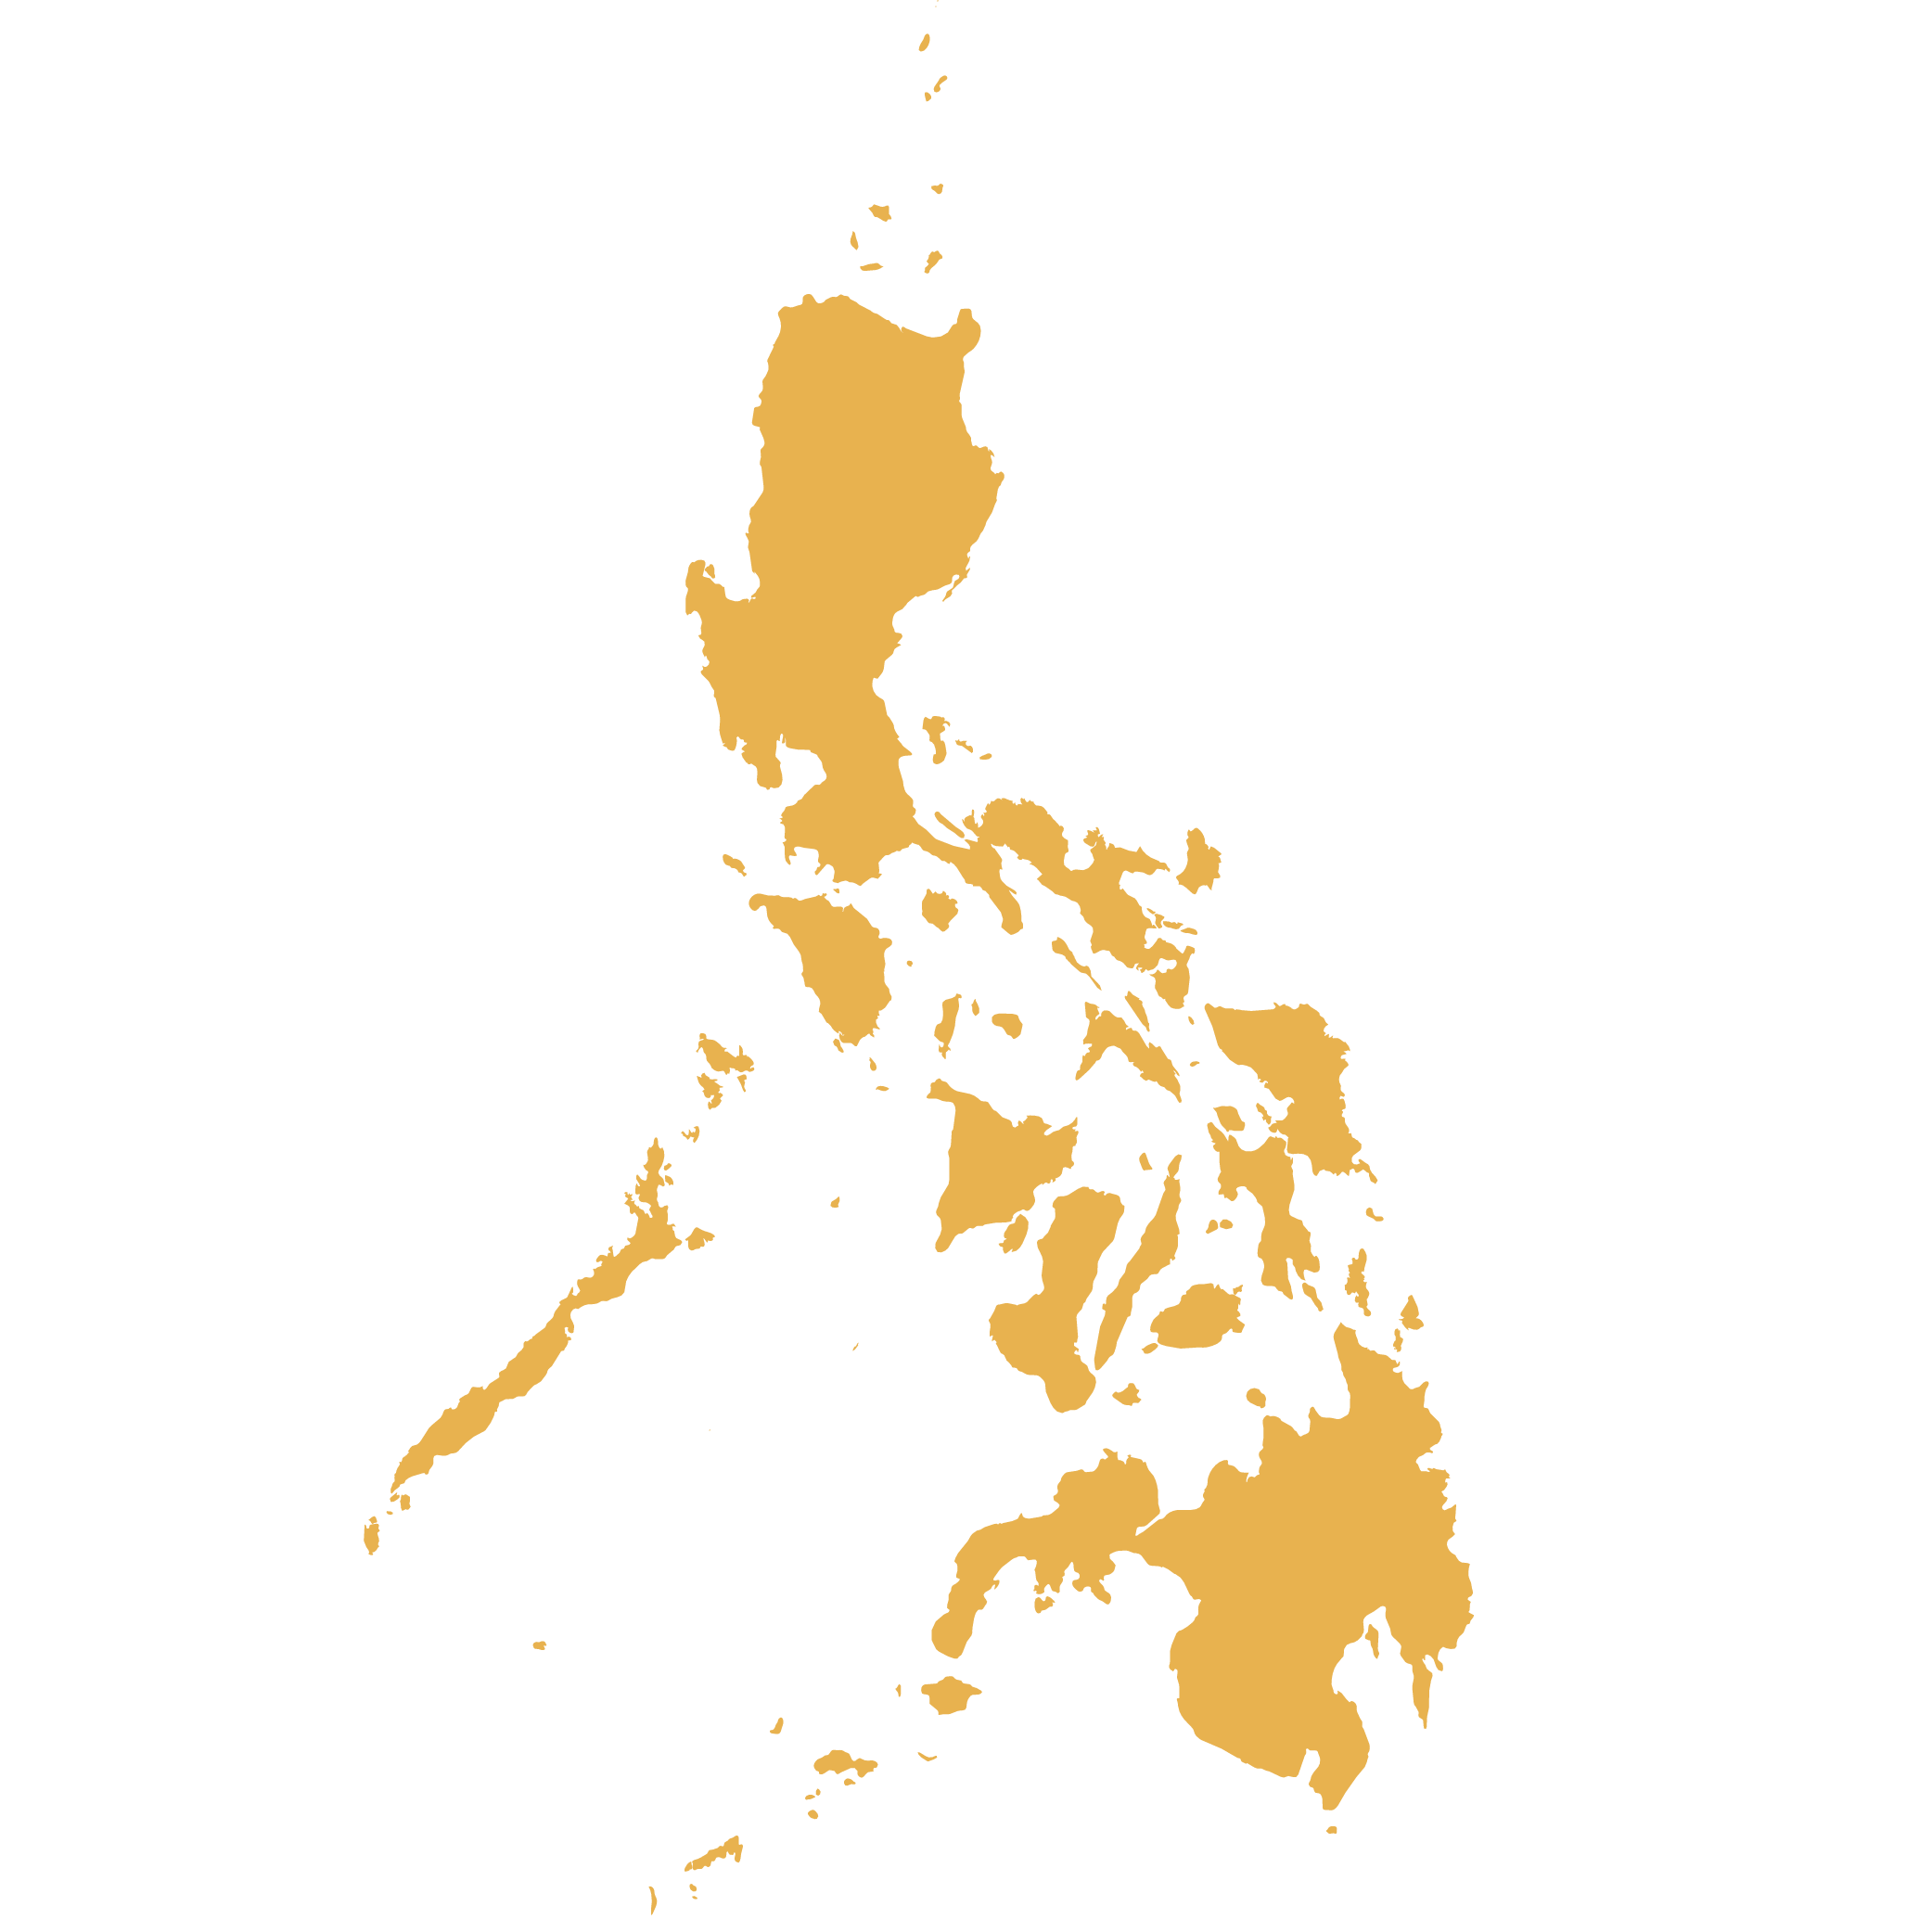 The Philippines Map